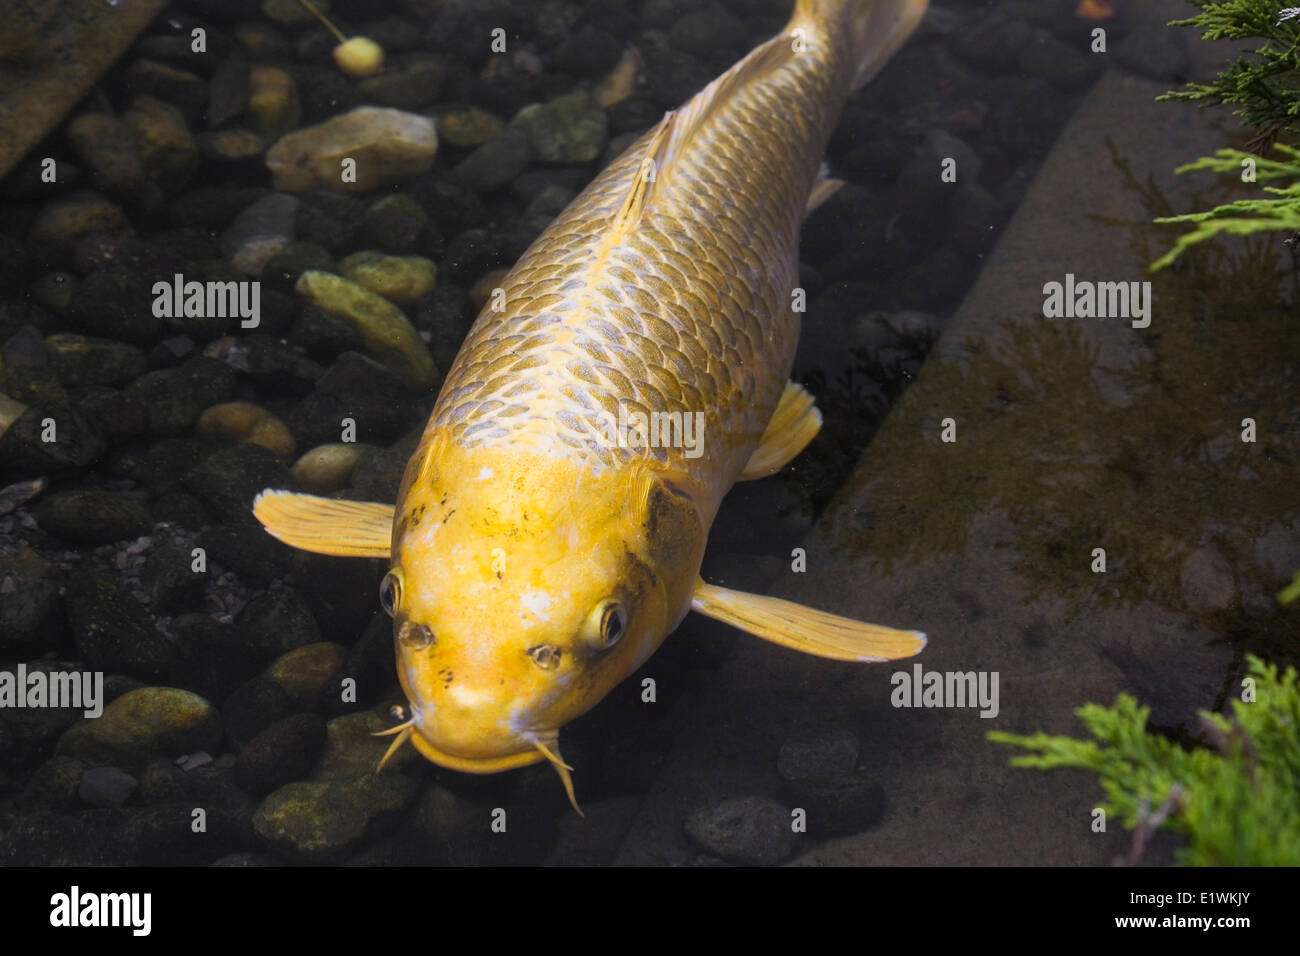 Close Up Of A Golden Yellow Japanese Koi Fish In A Pond Montreal Stock Photo Royalty Free